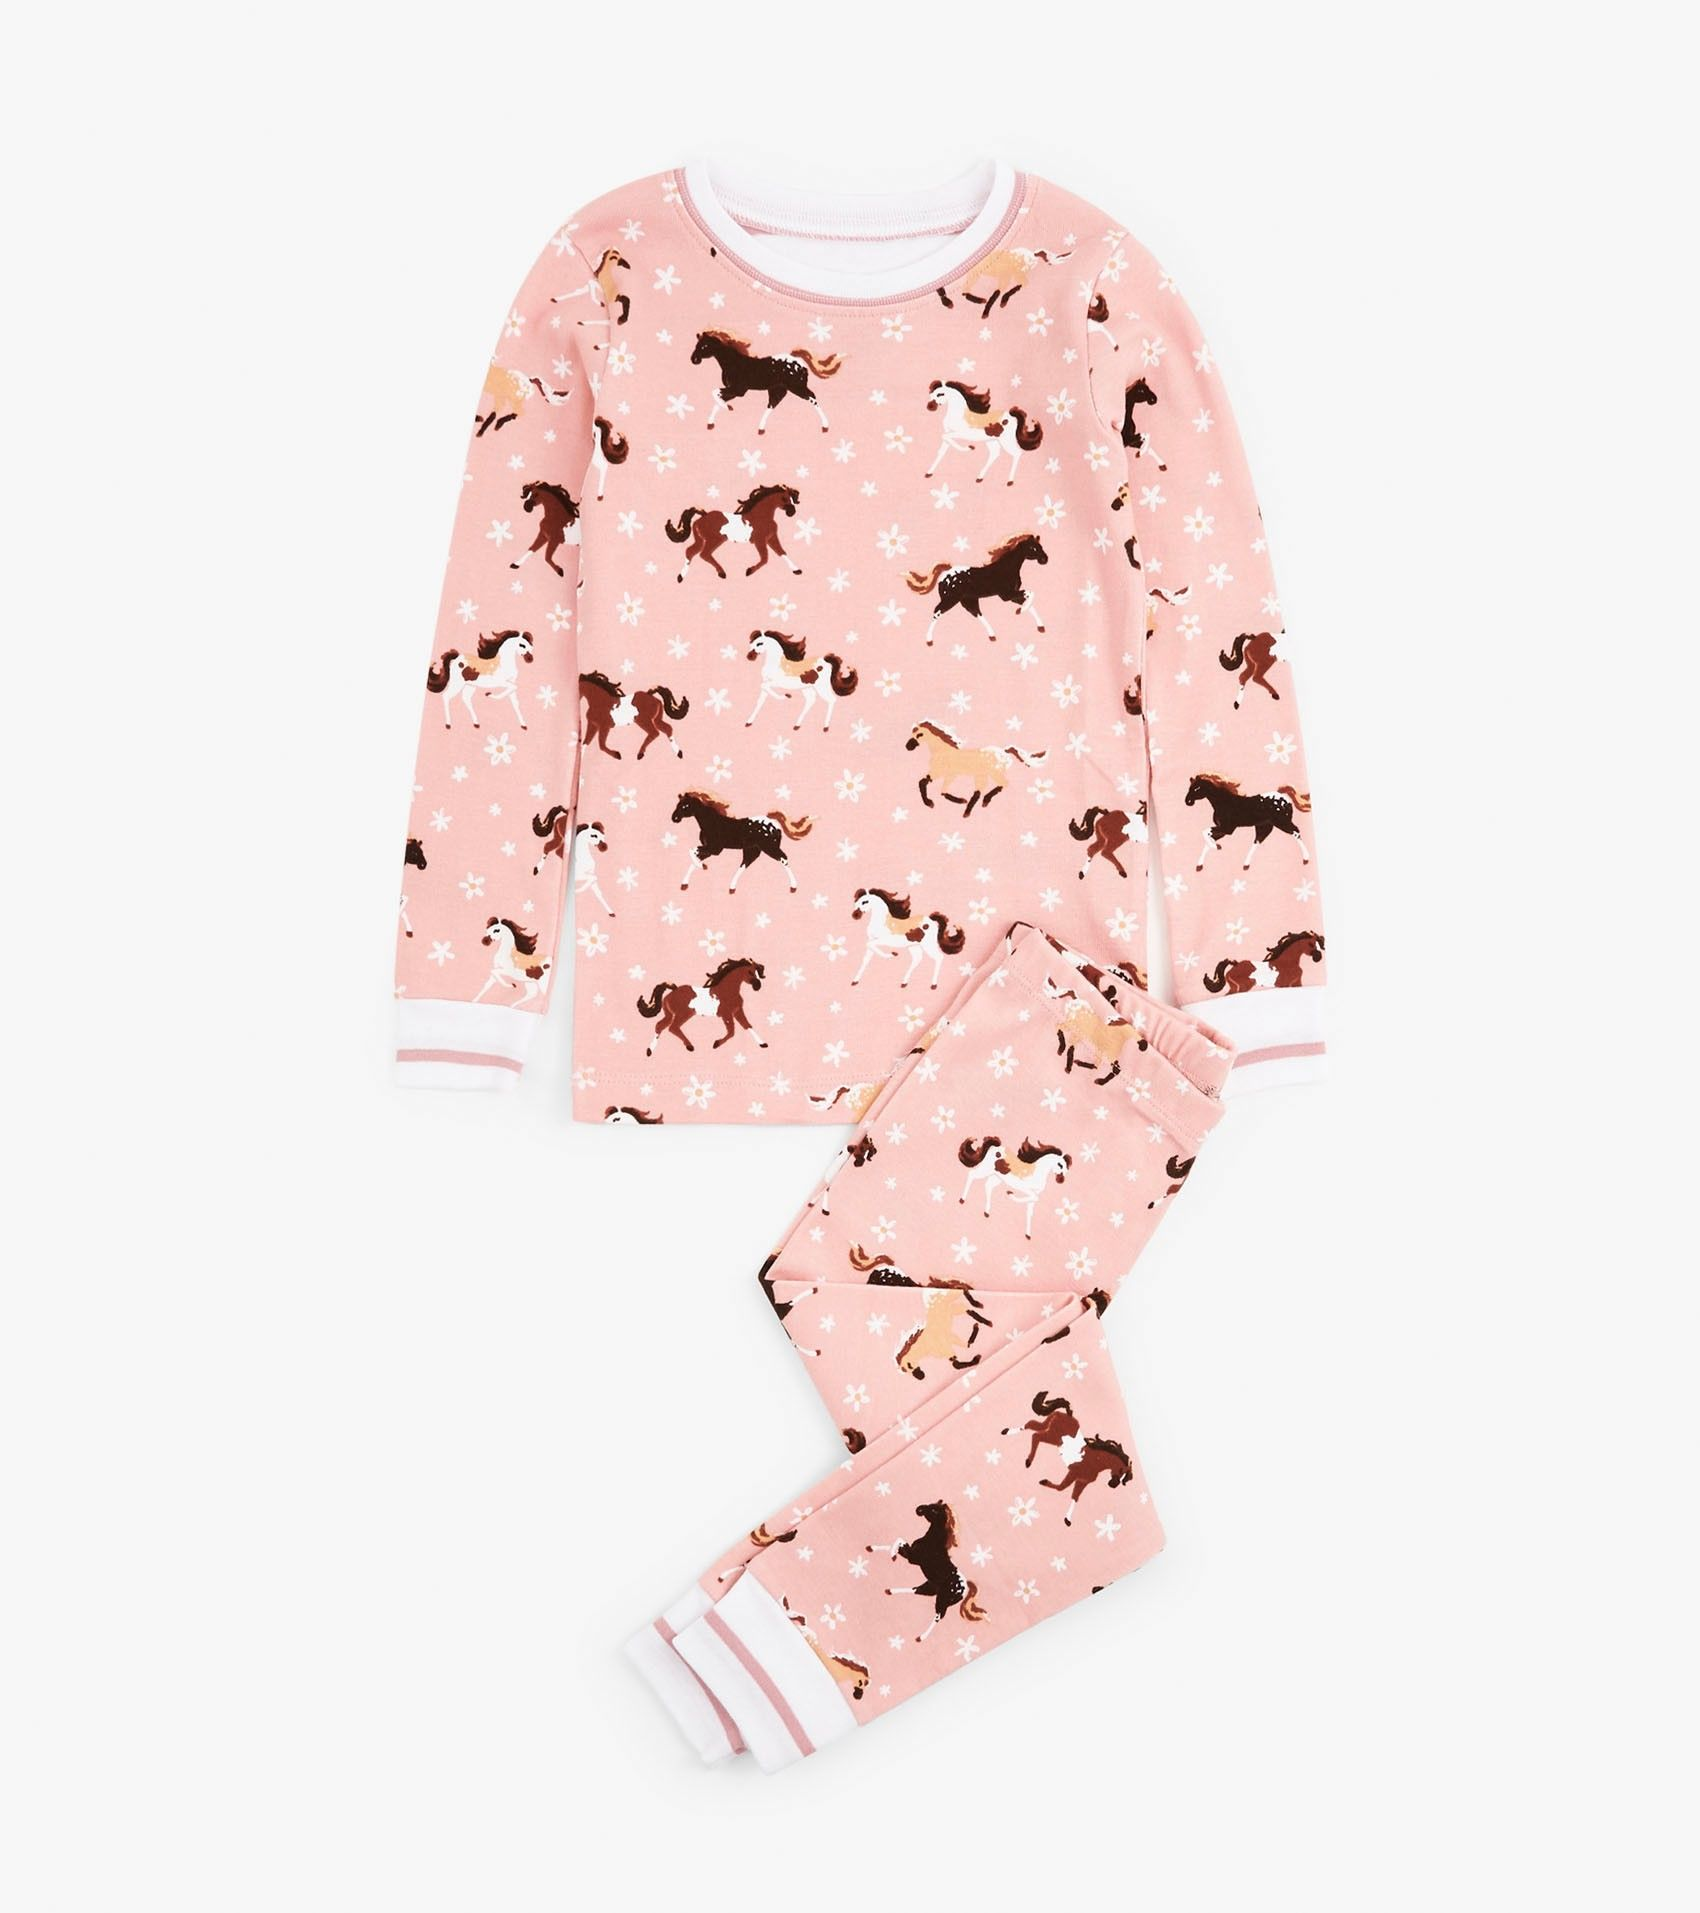 Frolicking Horses Organic Cotton Pajama Set New Arrivals Collections Girls Hatley Canada Cotton Pajama Sets Pajama Set Sale Cotton Pyjamas